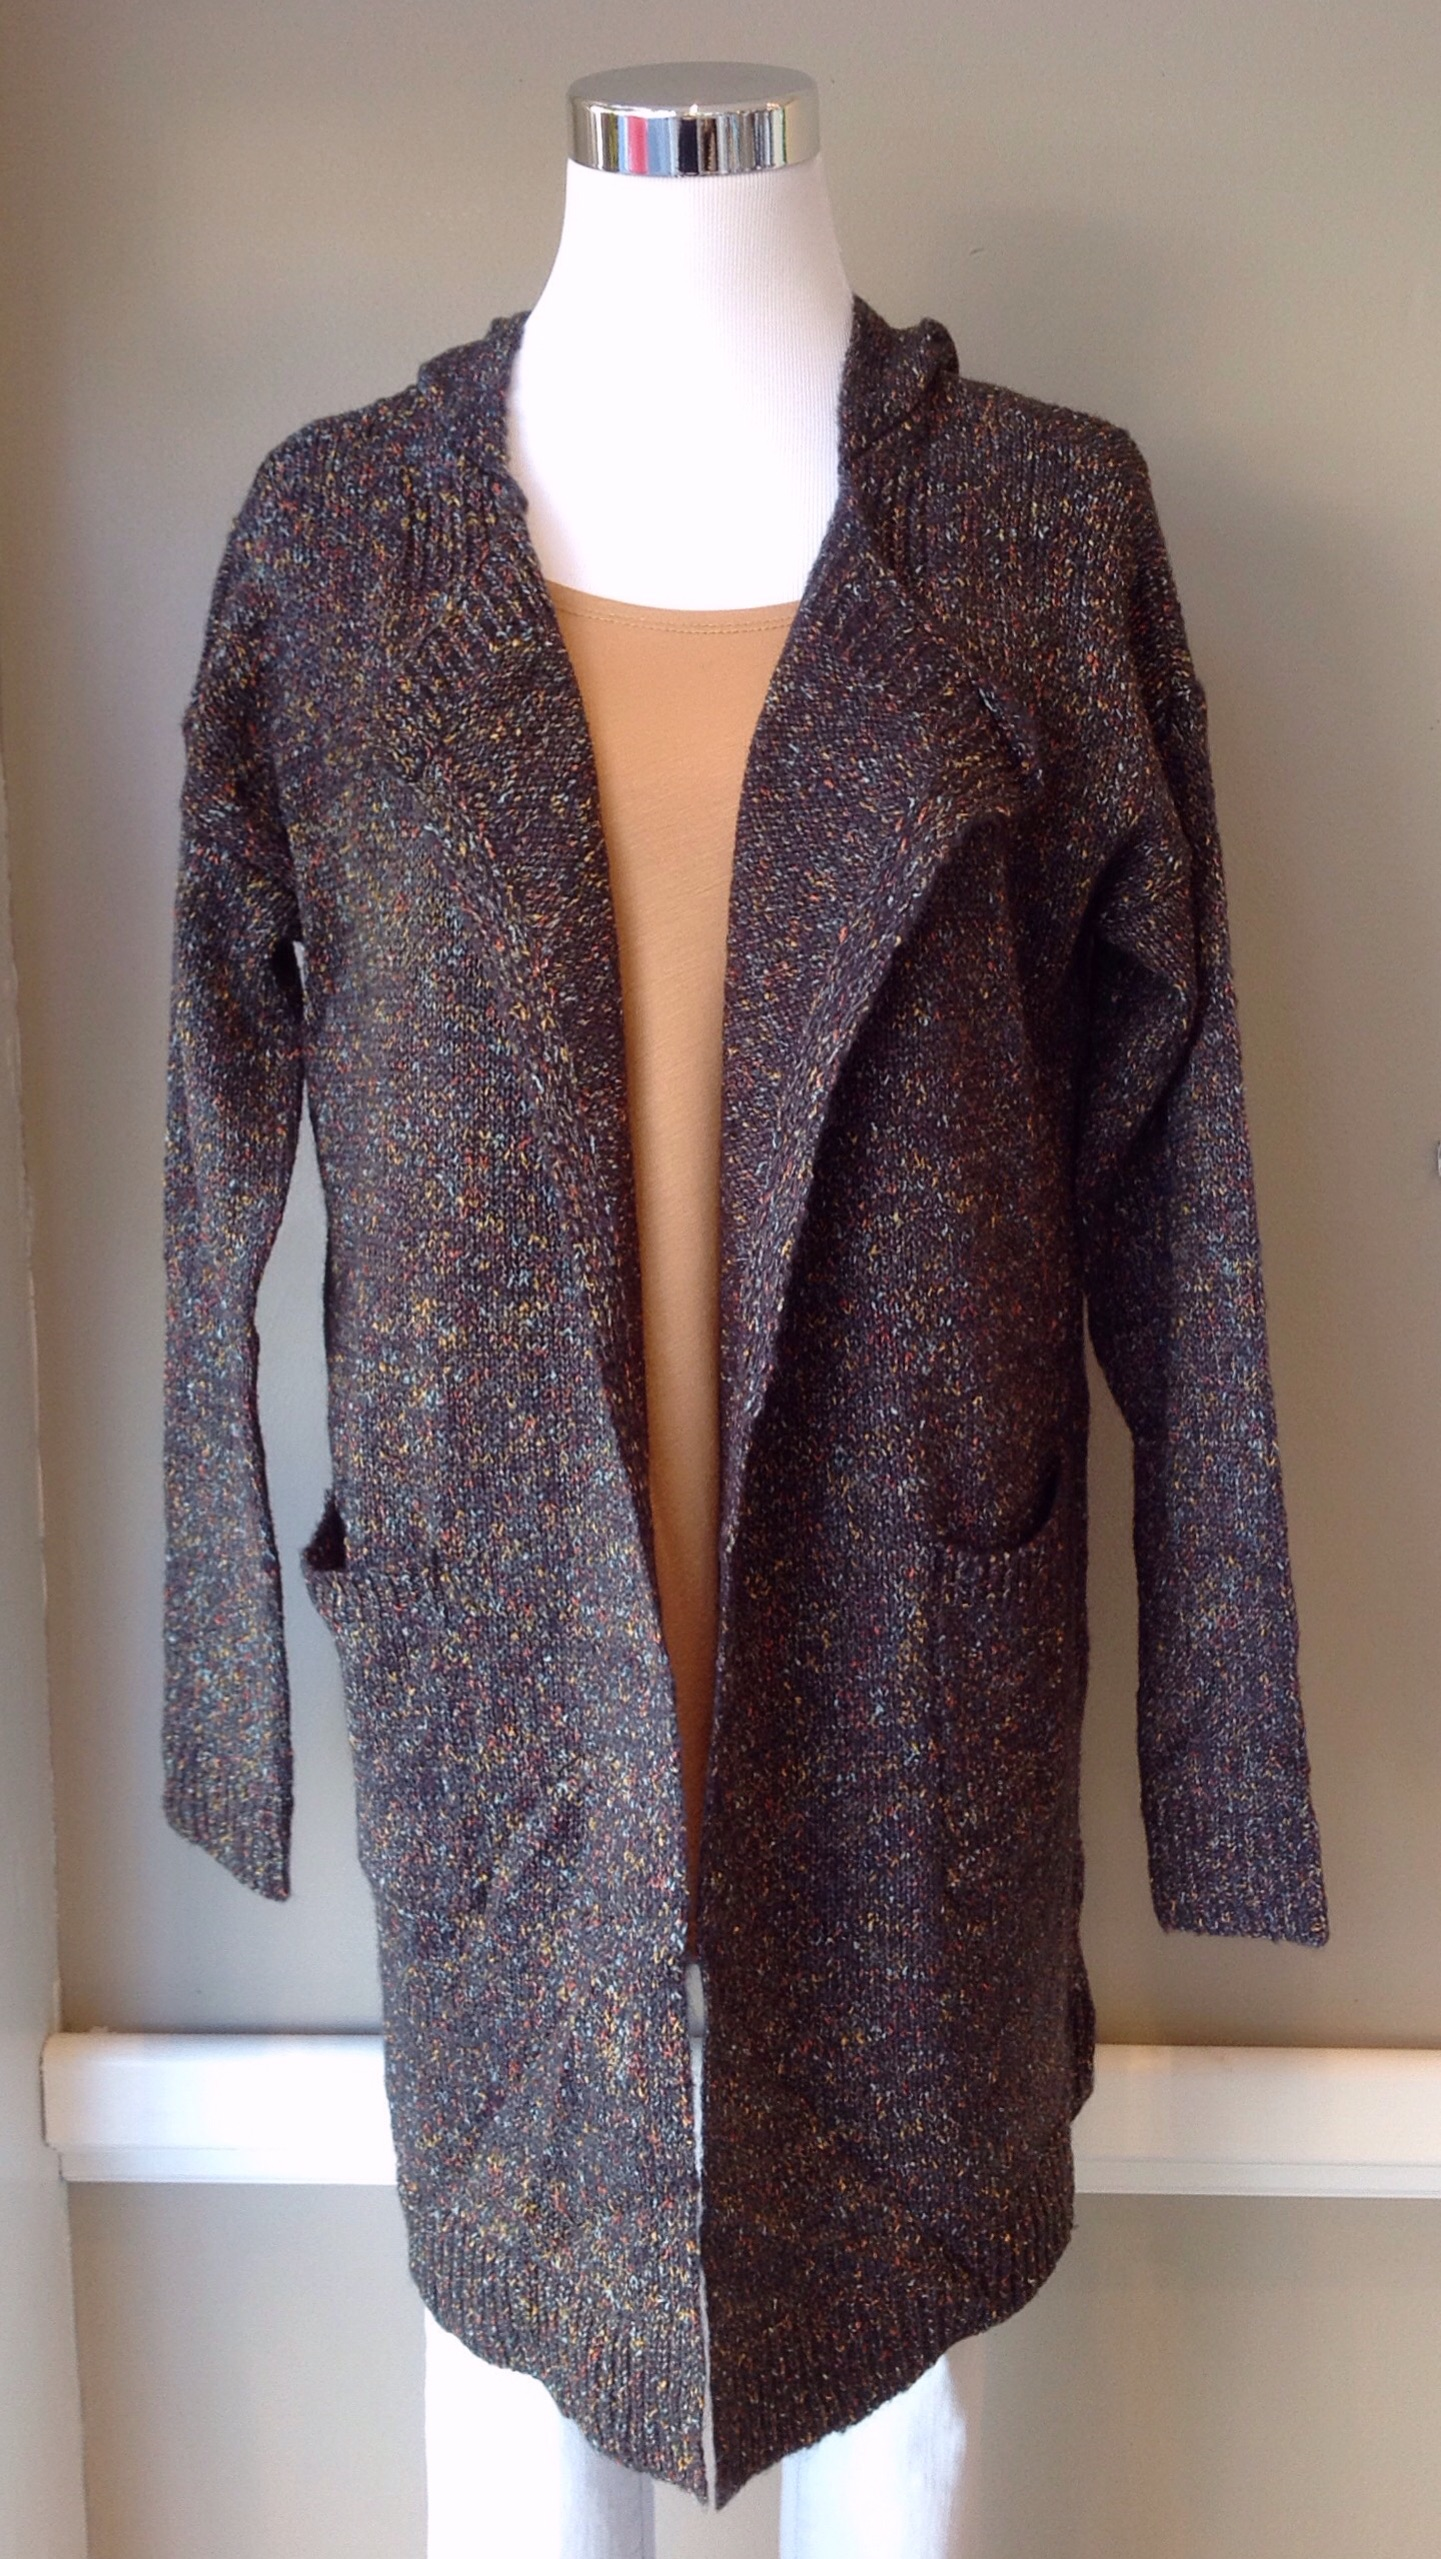 Long confetti cardigan with side pockets and hood, in grey/mult.